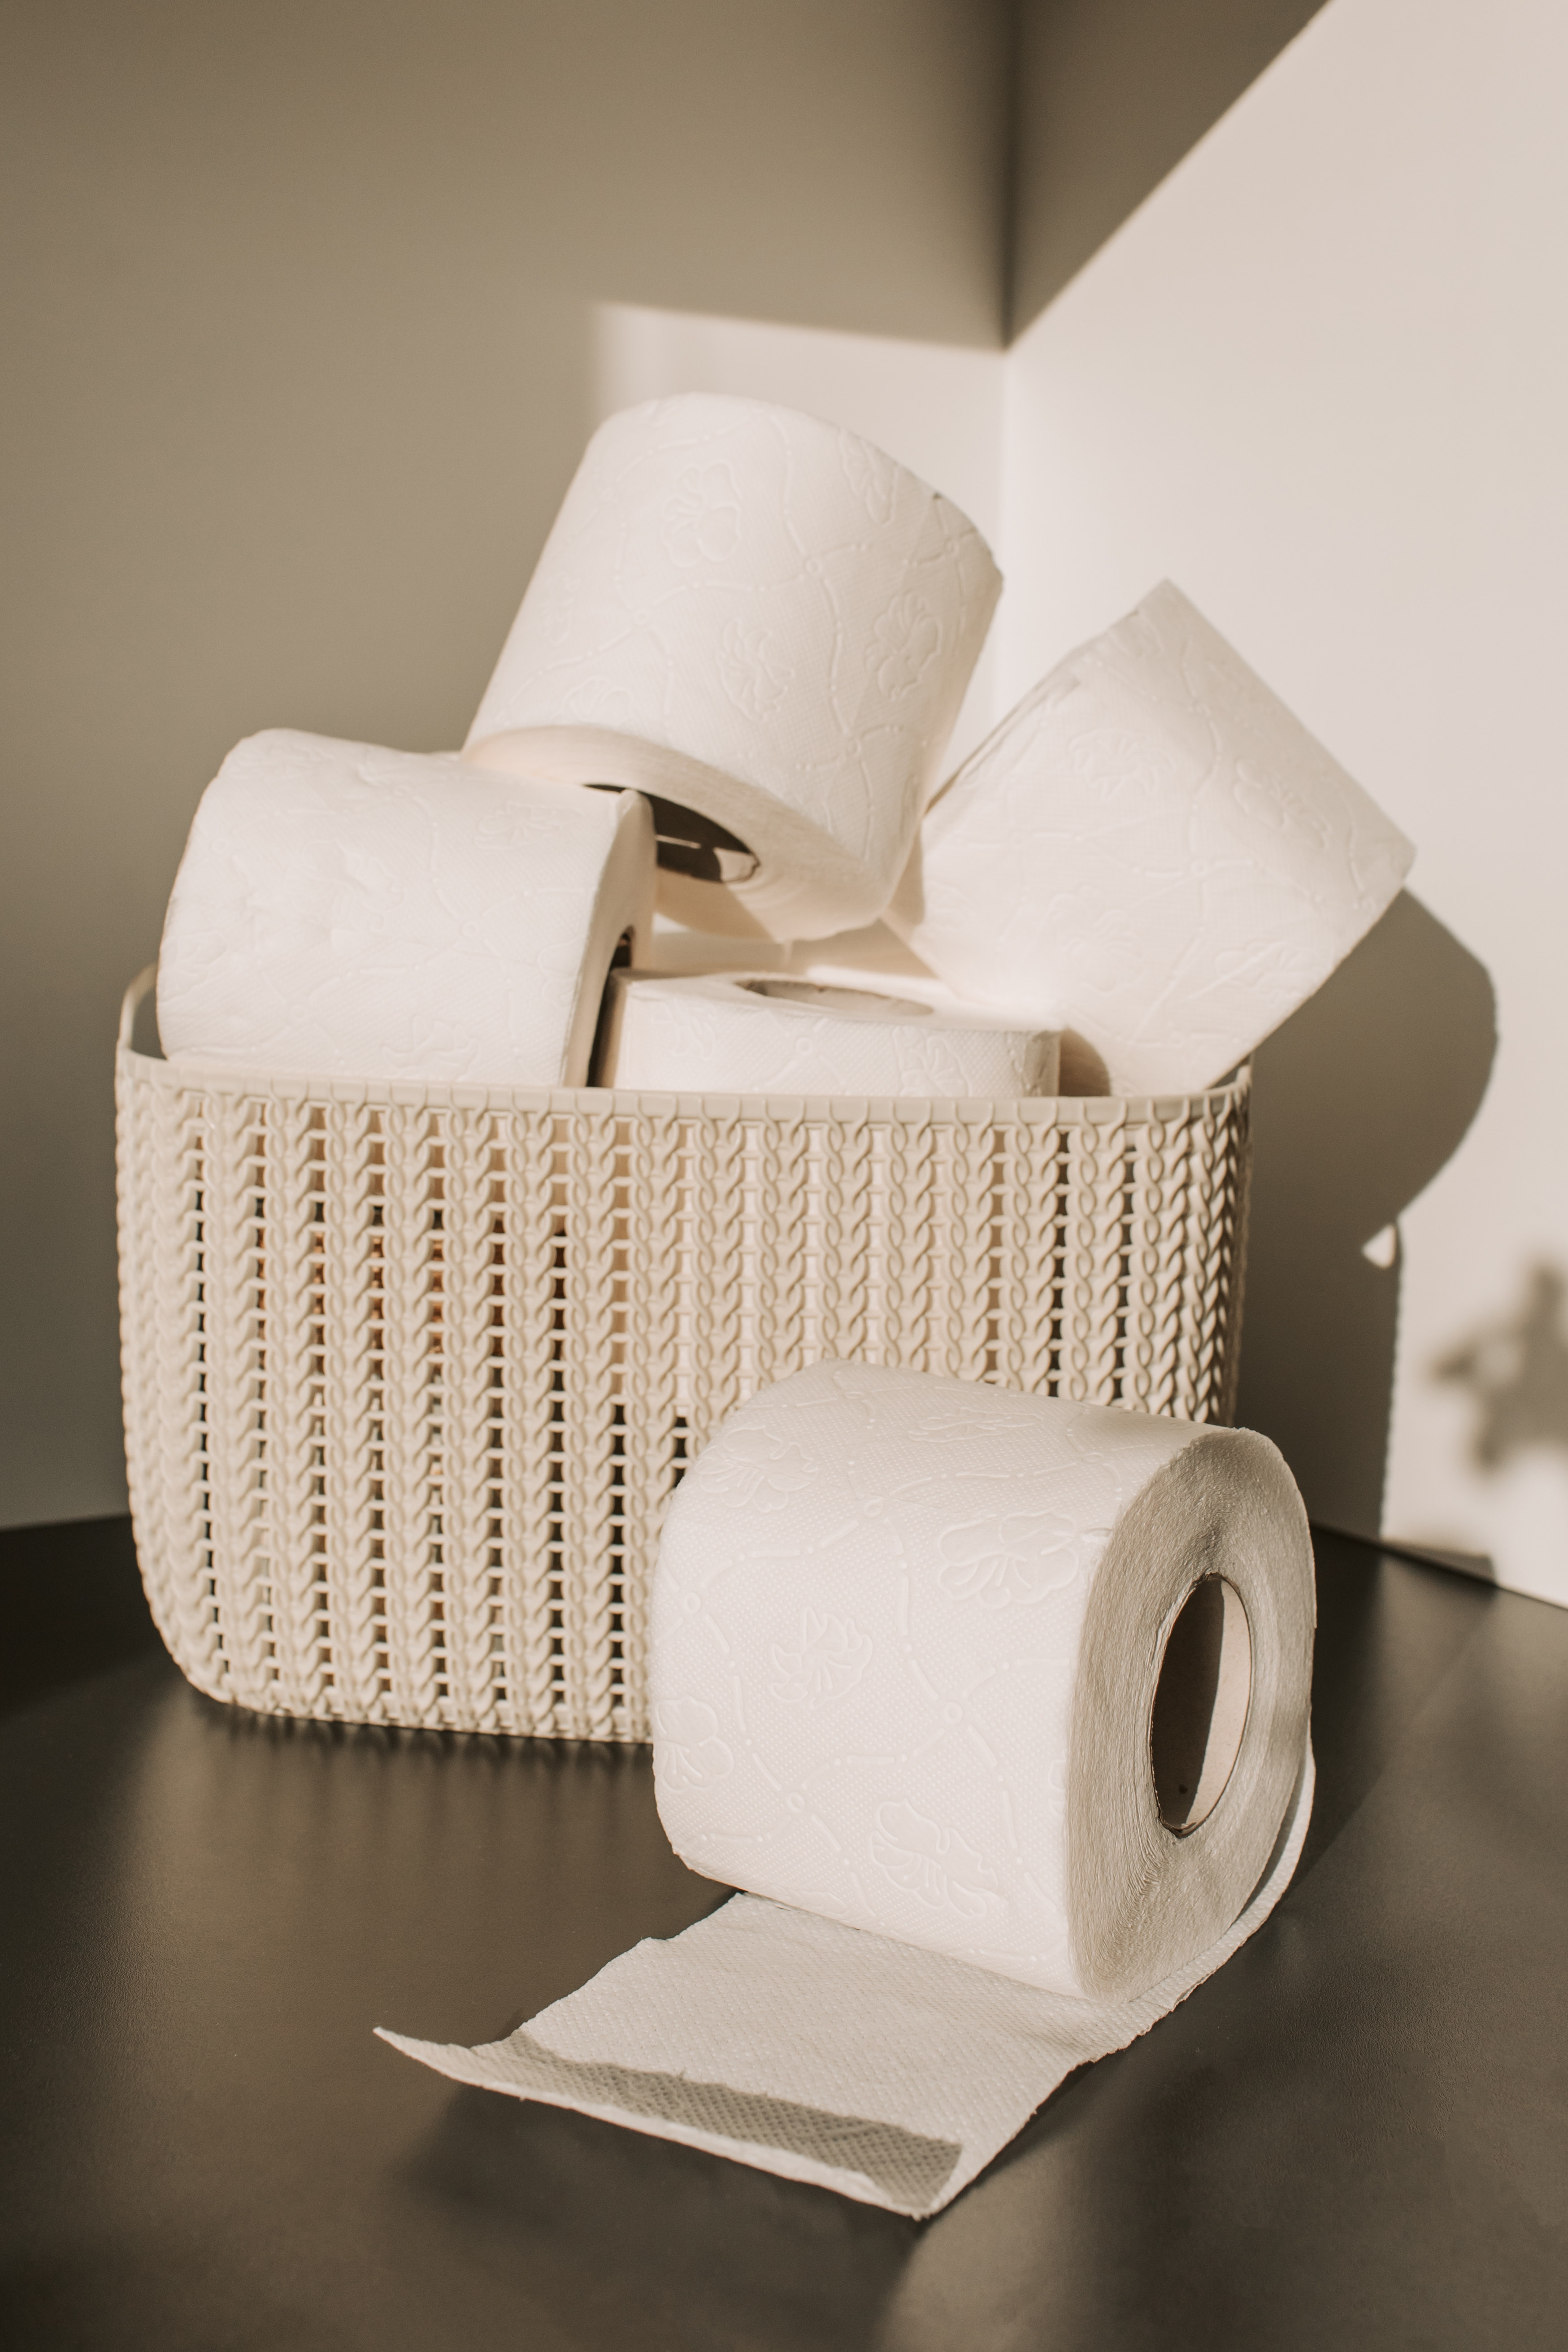 white-toilet-paper-roll-on-woven-basket-3958196 (2)